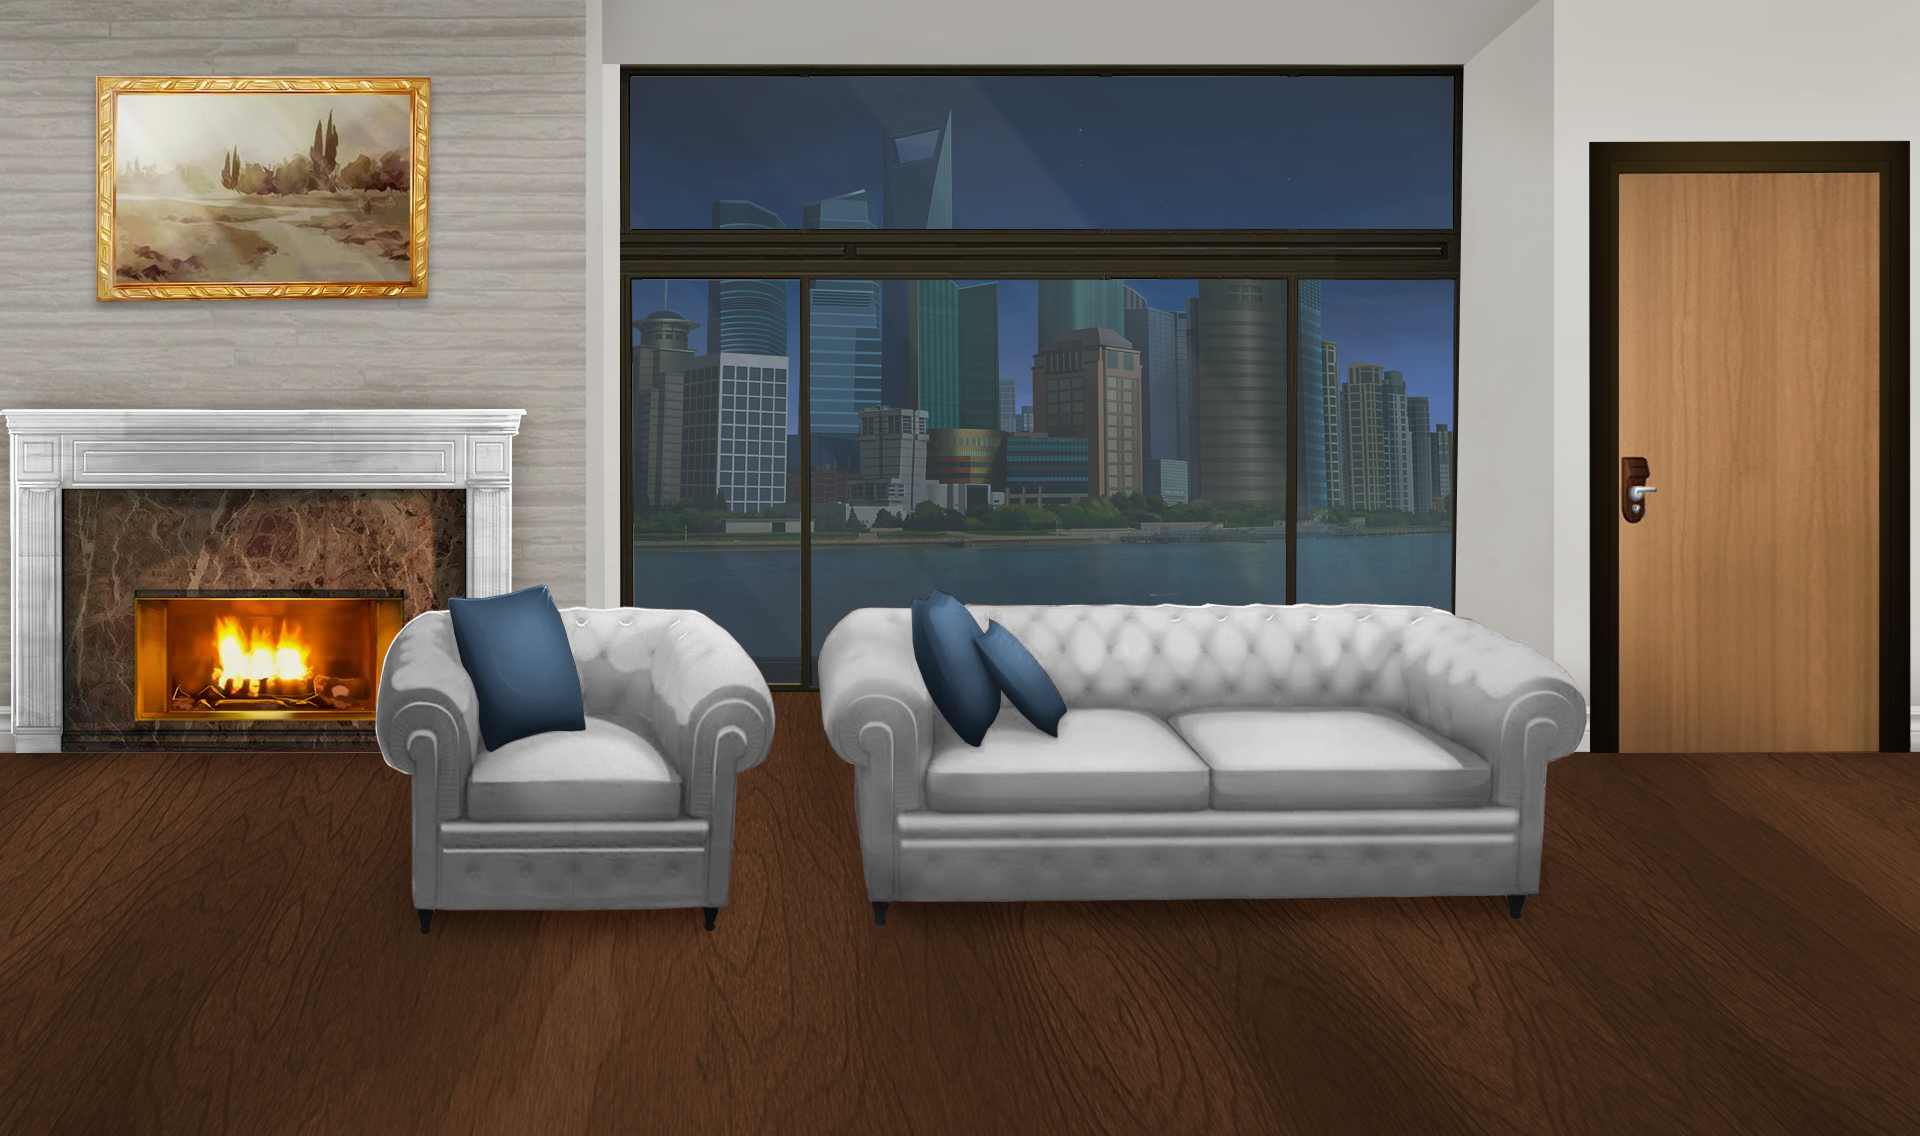 The Living Room Last Night Episode Night To Day Bedroom Background